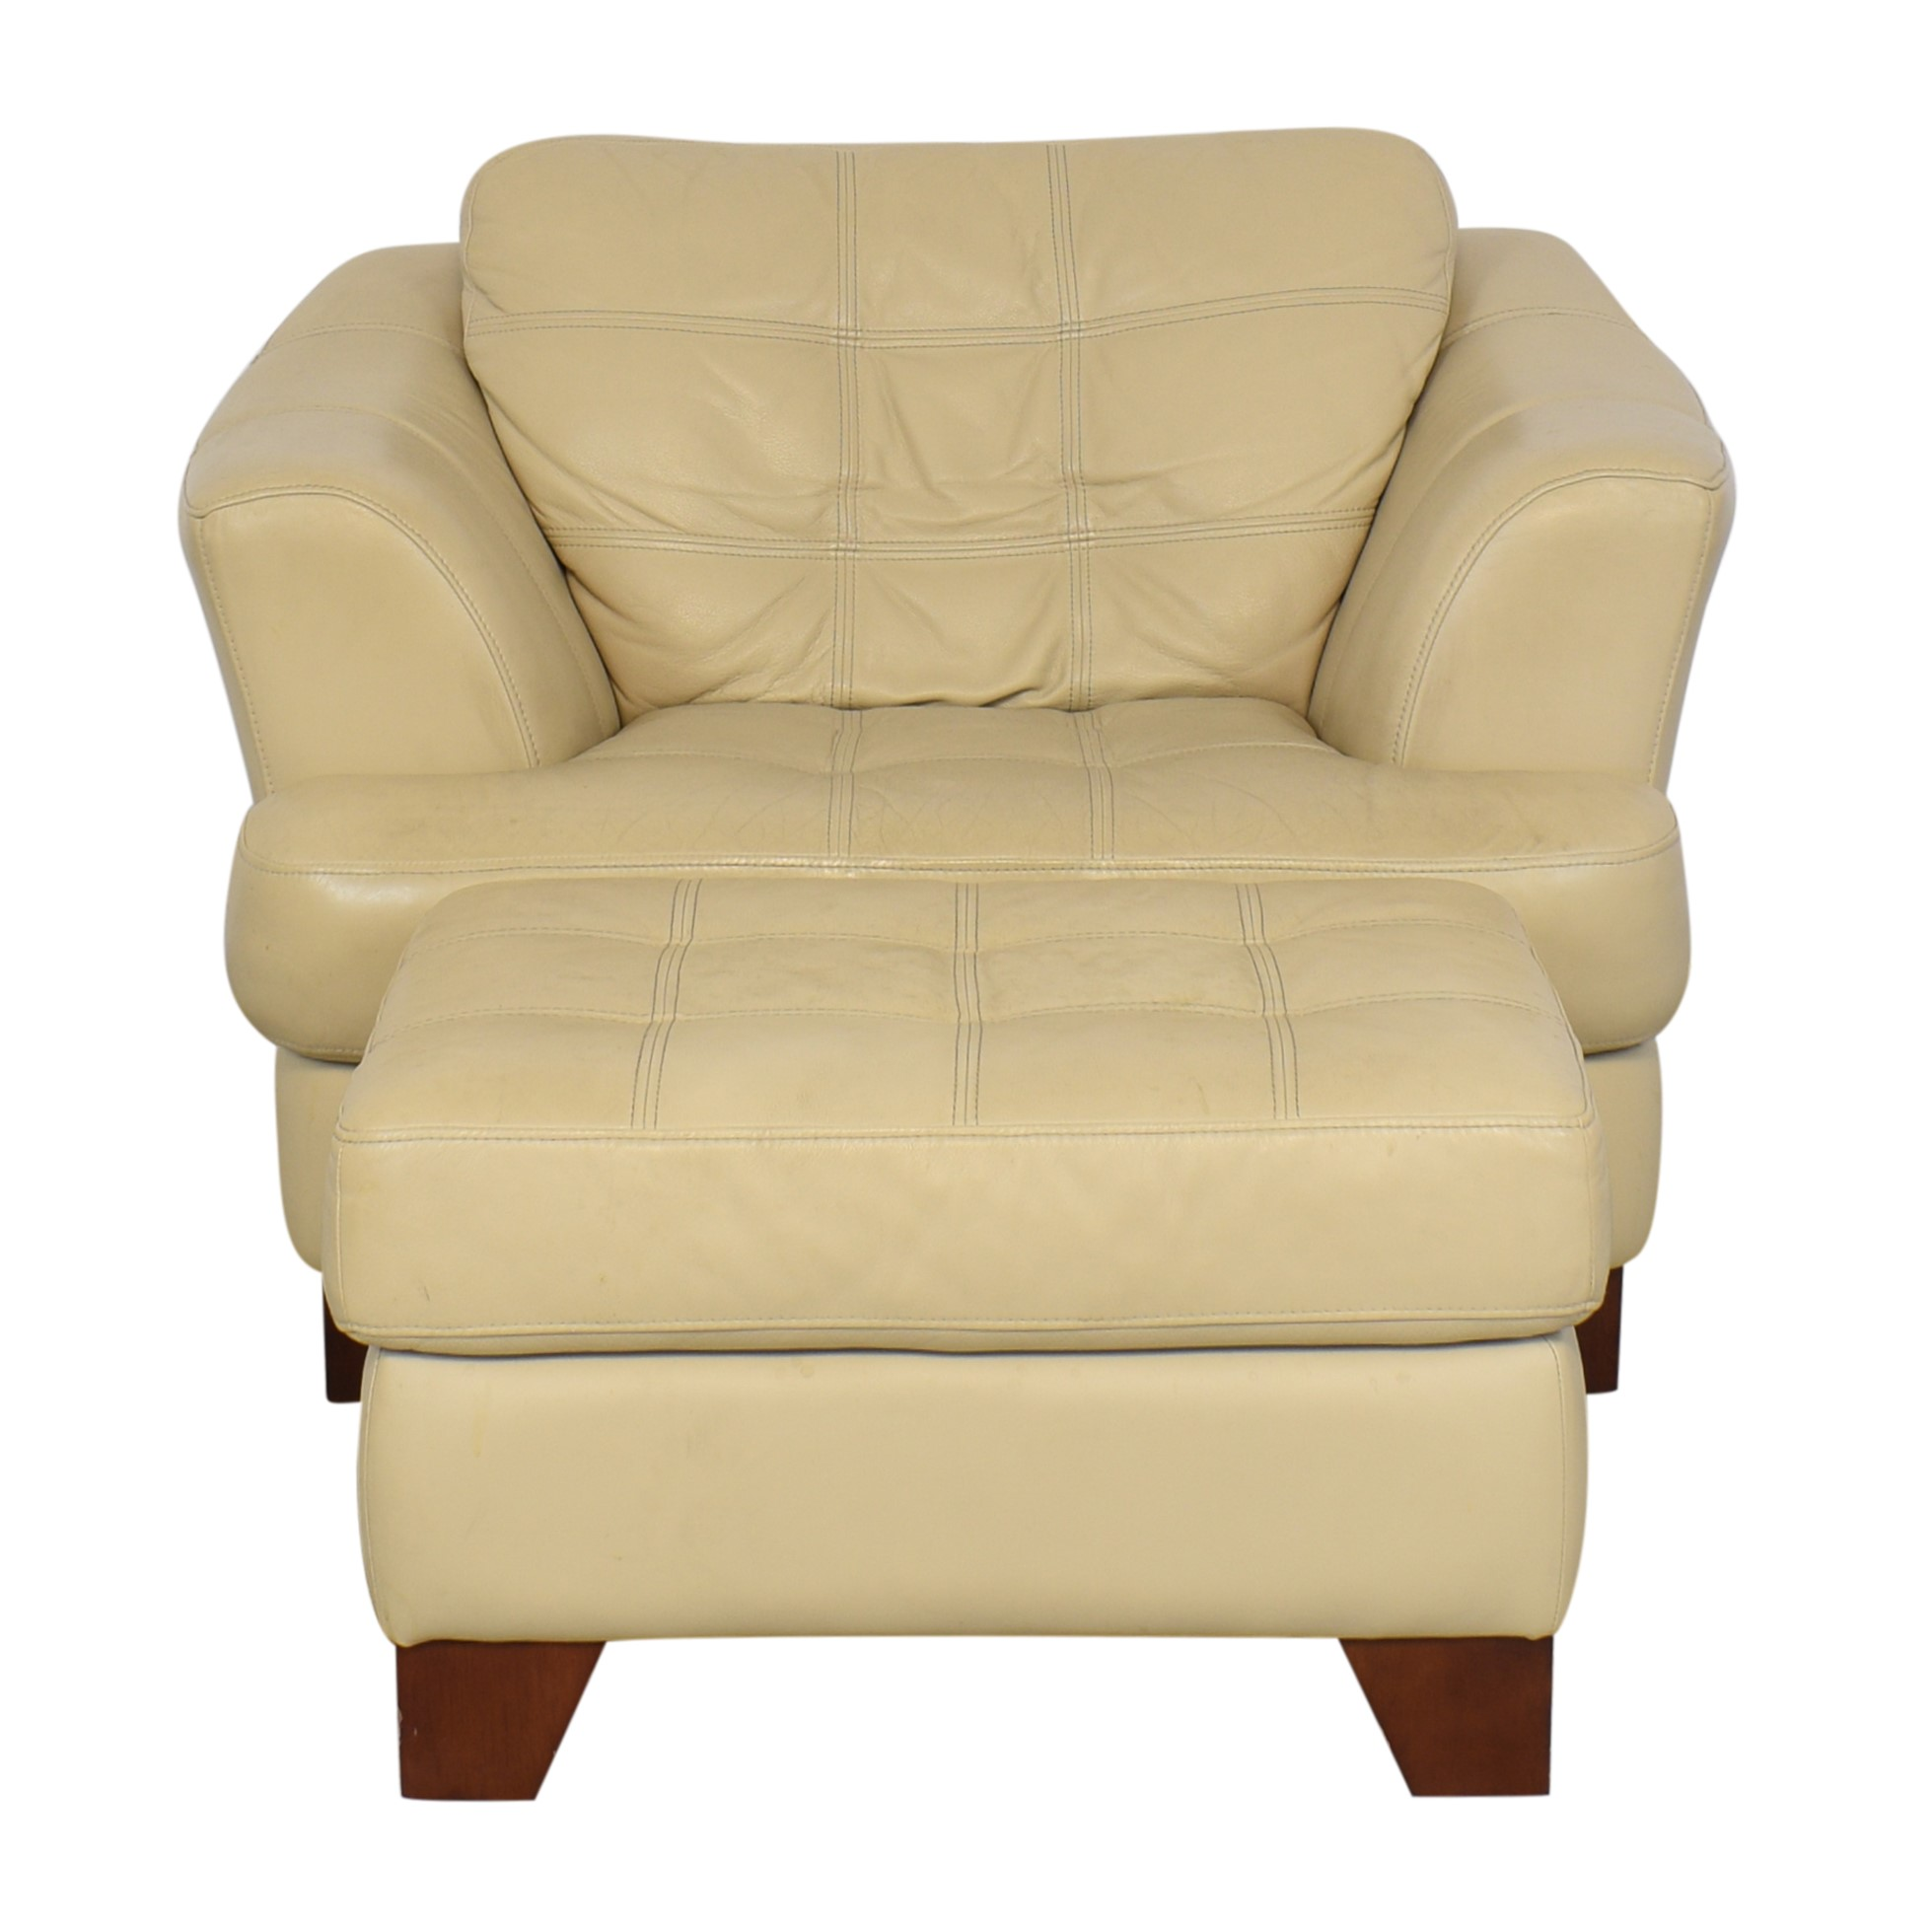 buy Superb Club Chair and Ottoman Superb Chairs